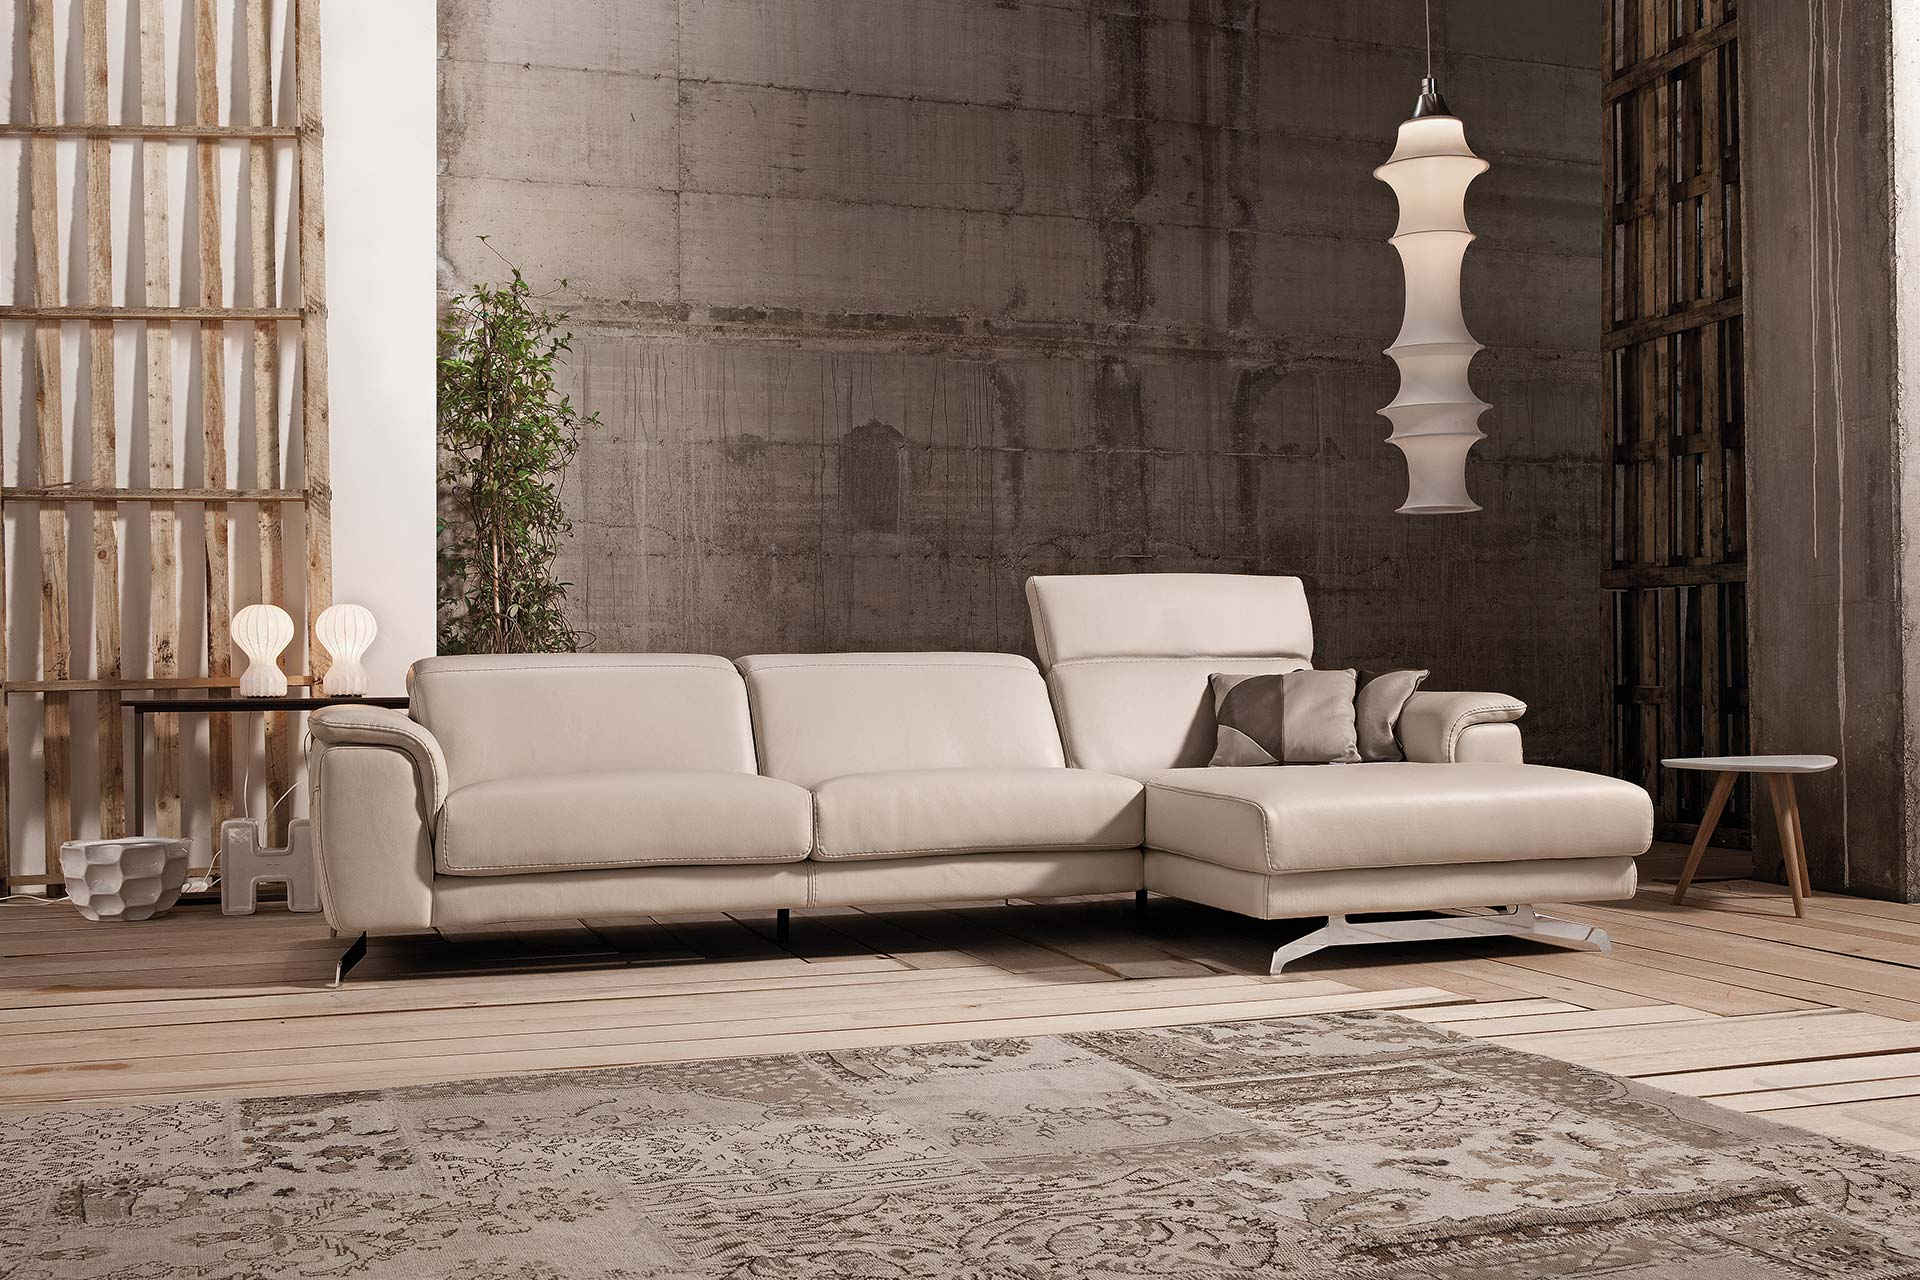 Divano antigraffio interesting diotti divani new gallery of antigraffio cat friendly sofa with - Copri divano letto angolare ...